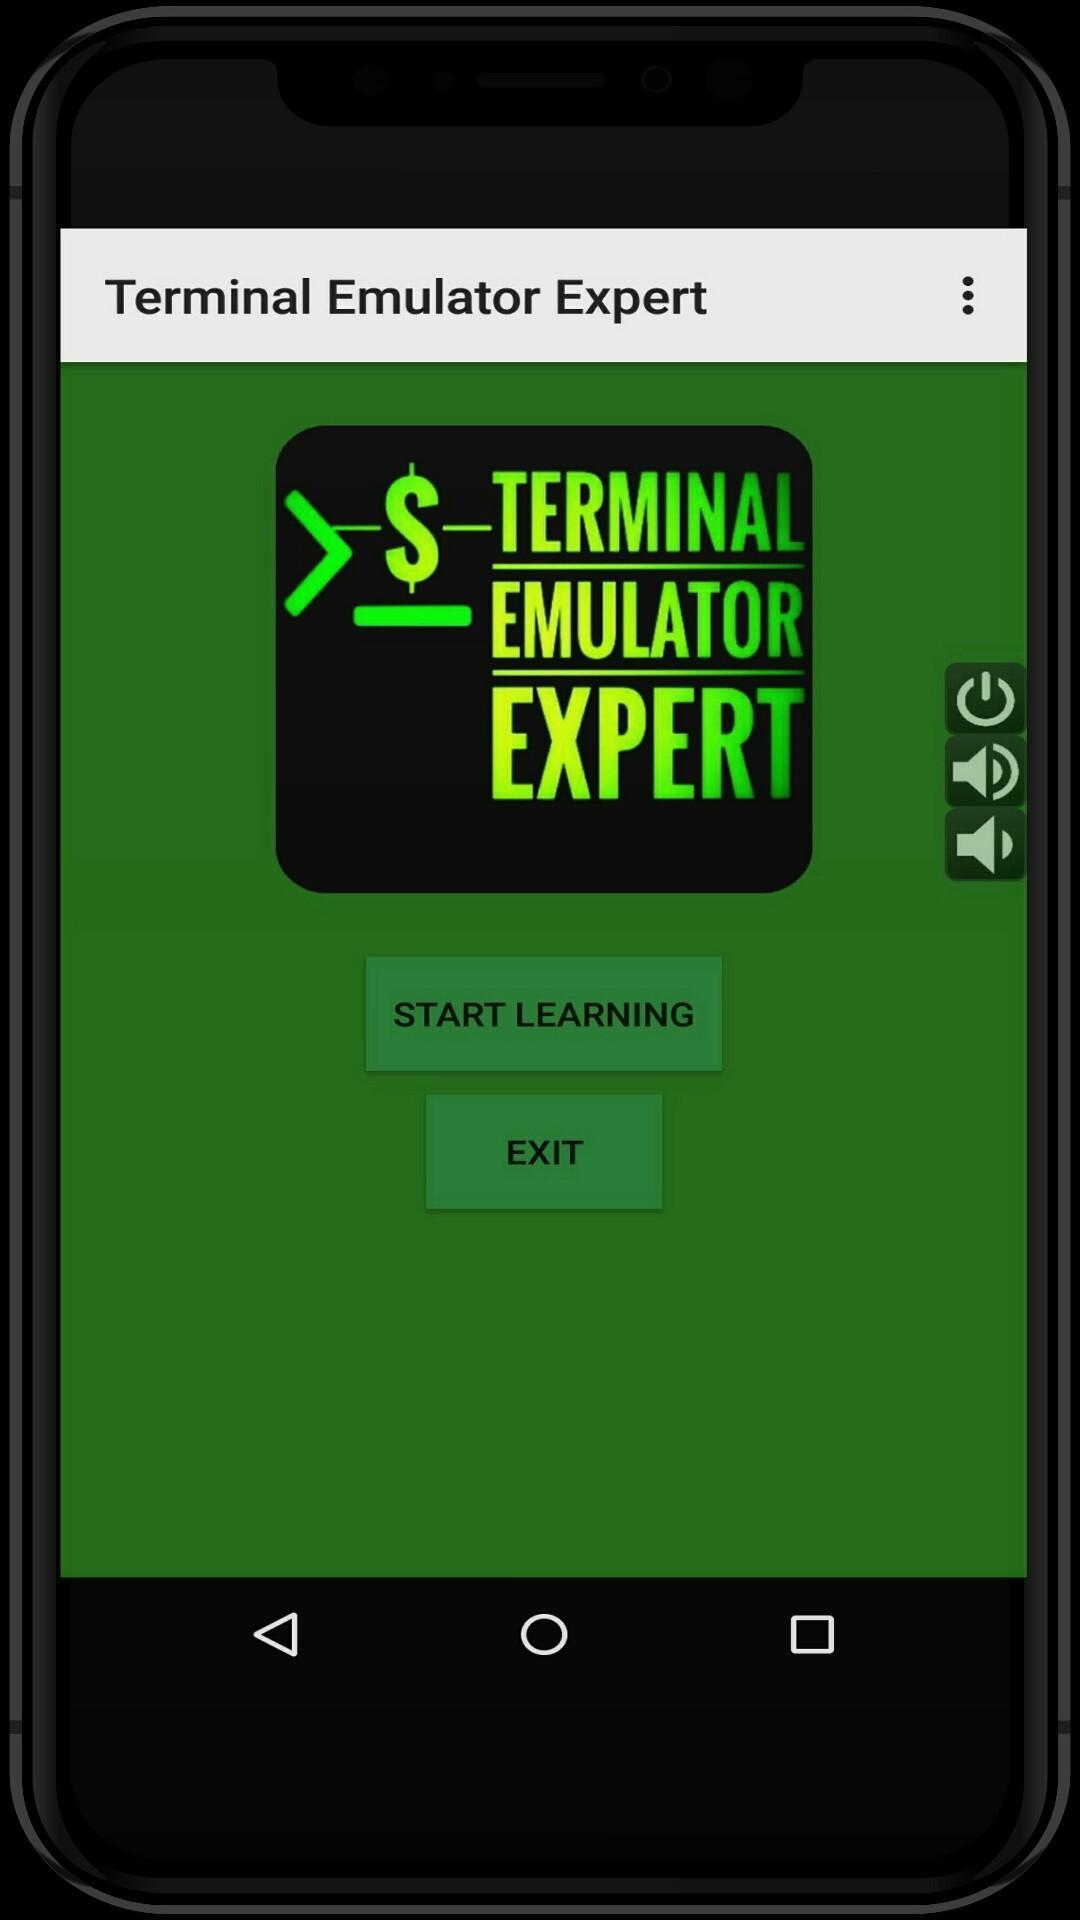 Terminal Emulator Expert for Android - APK Download